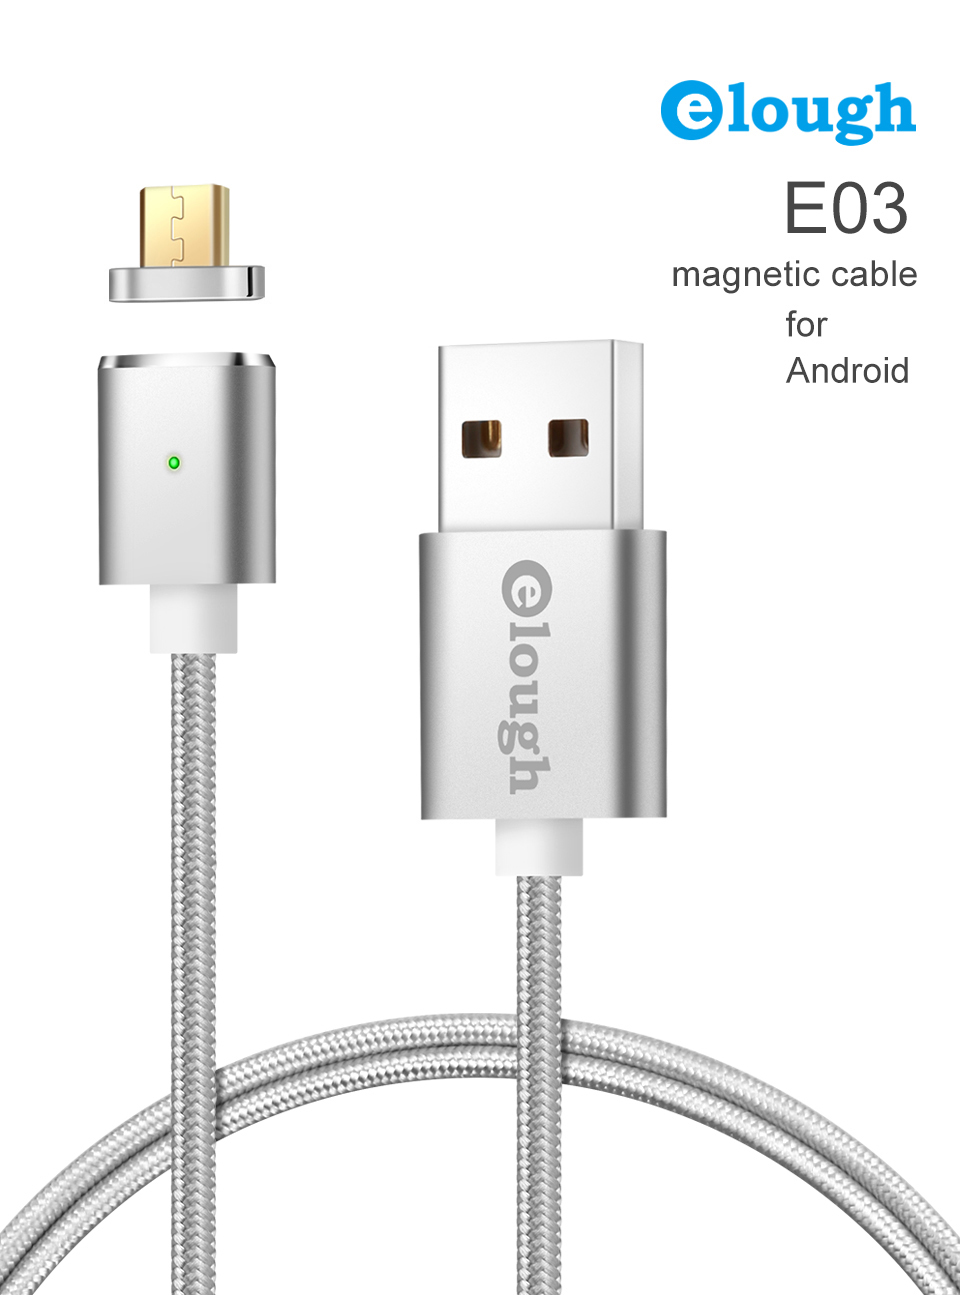 Usb Cable For Android Mobile: Elough E03 Magnetic Charger Micro USB Cable For Xiaomi Huawei rh:aliexpress.com,Design